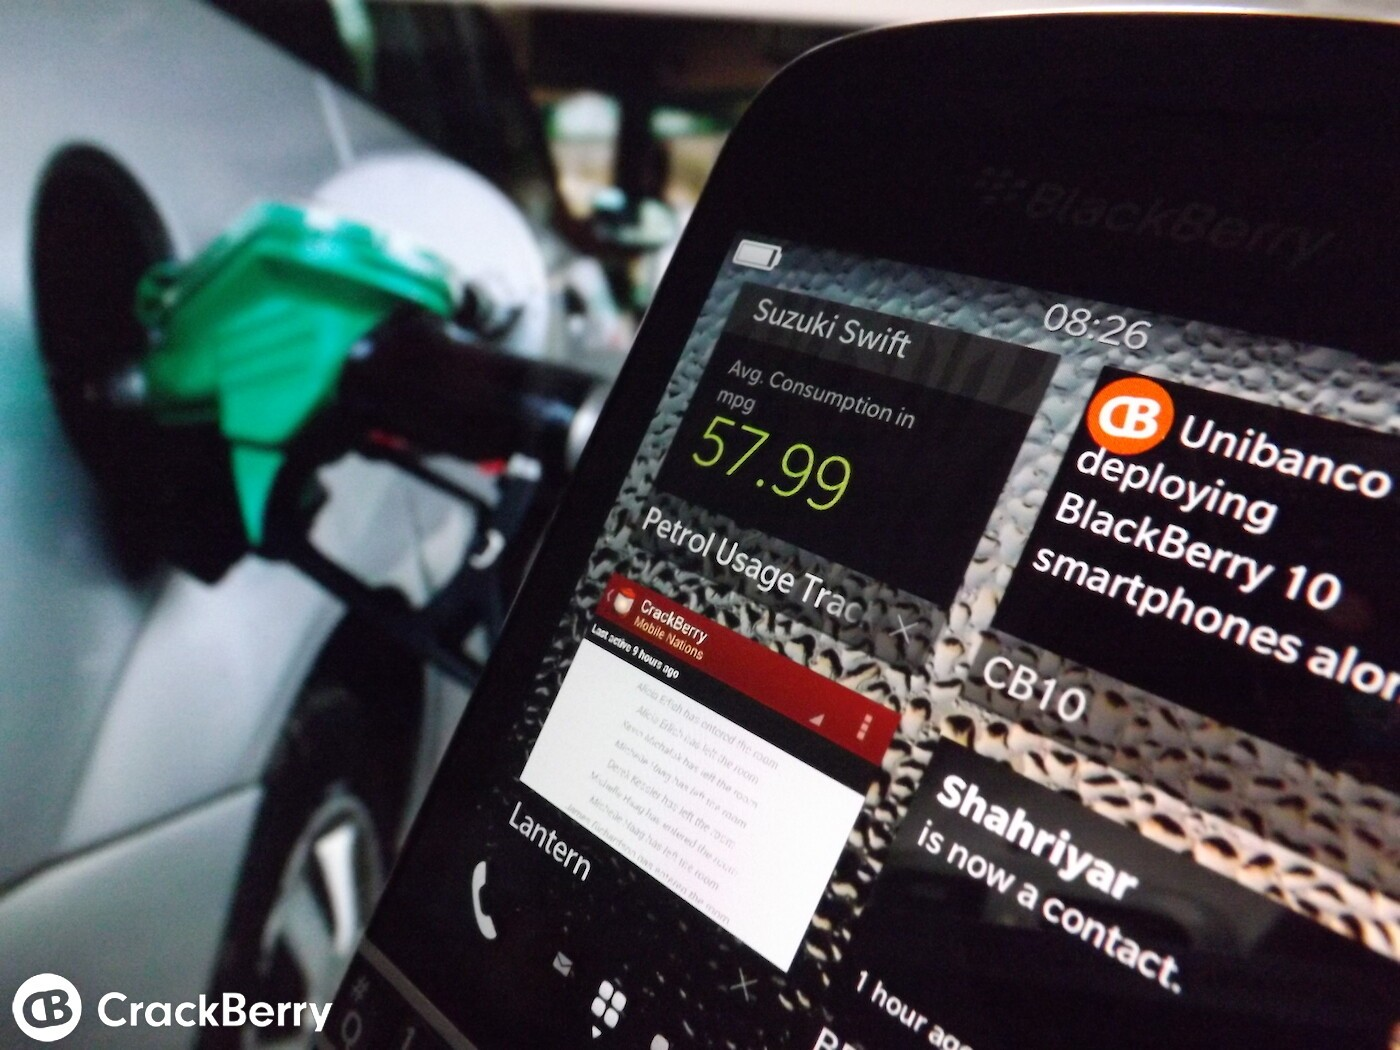 Petrol Usage Tracker BlackBerry 10